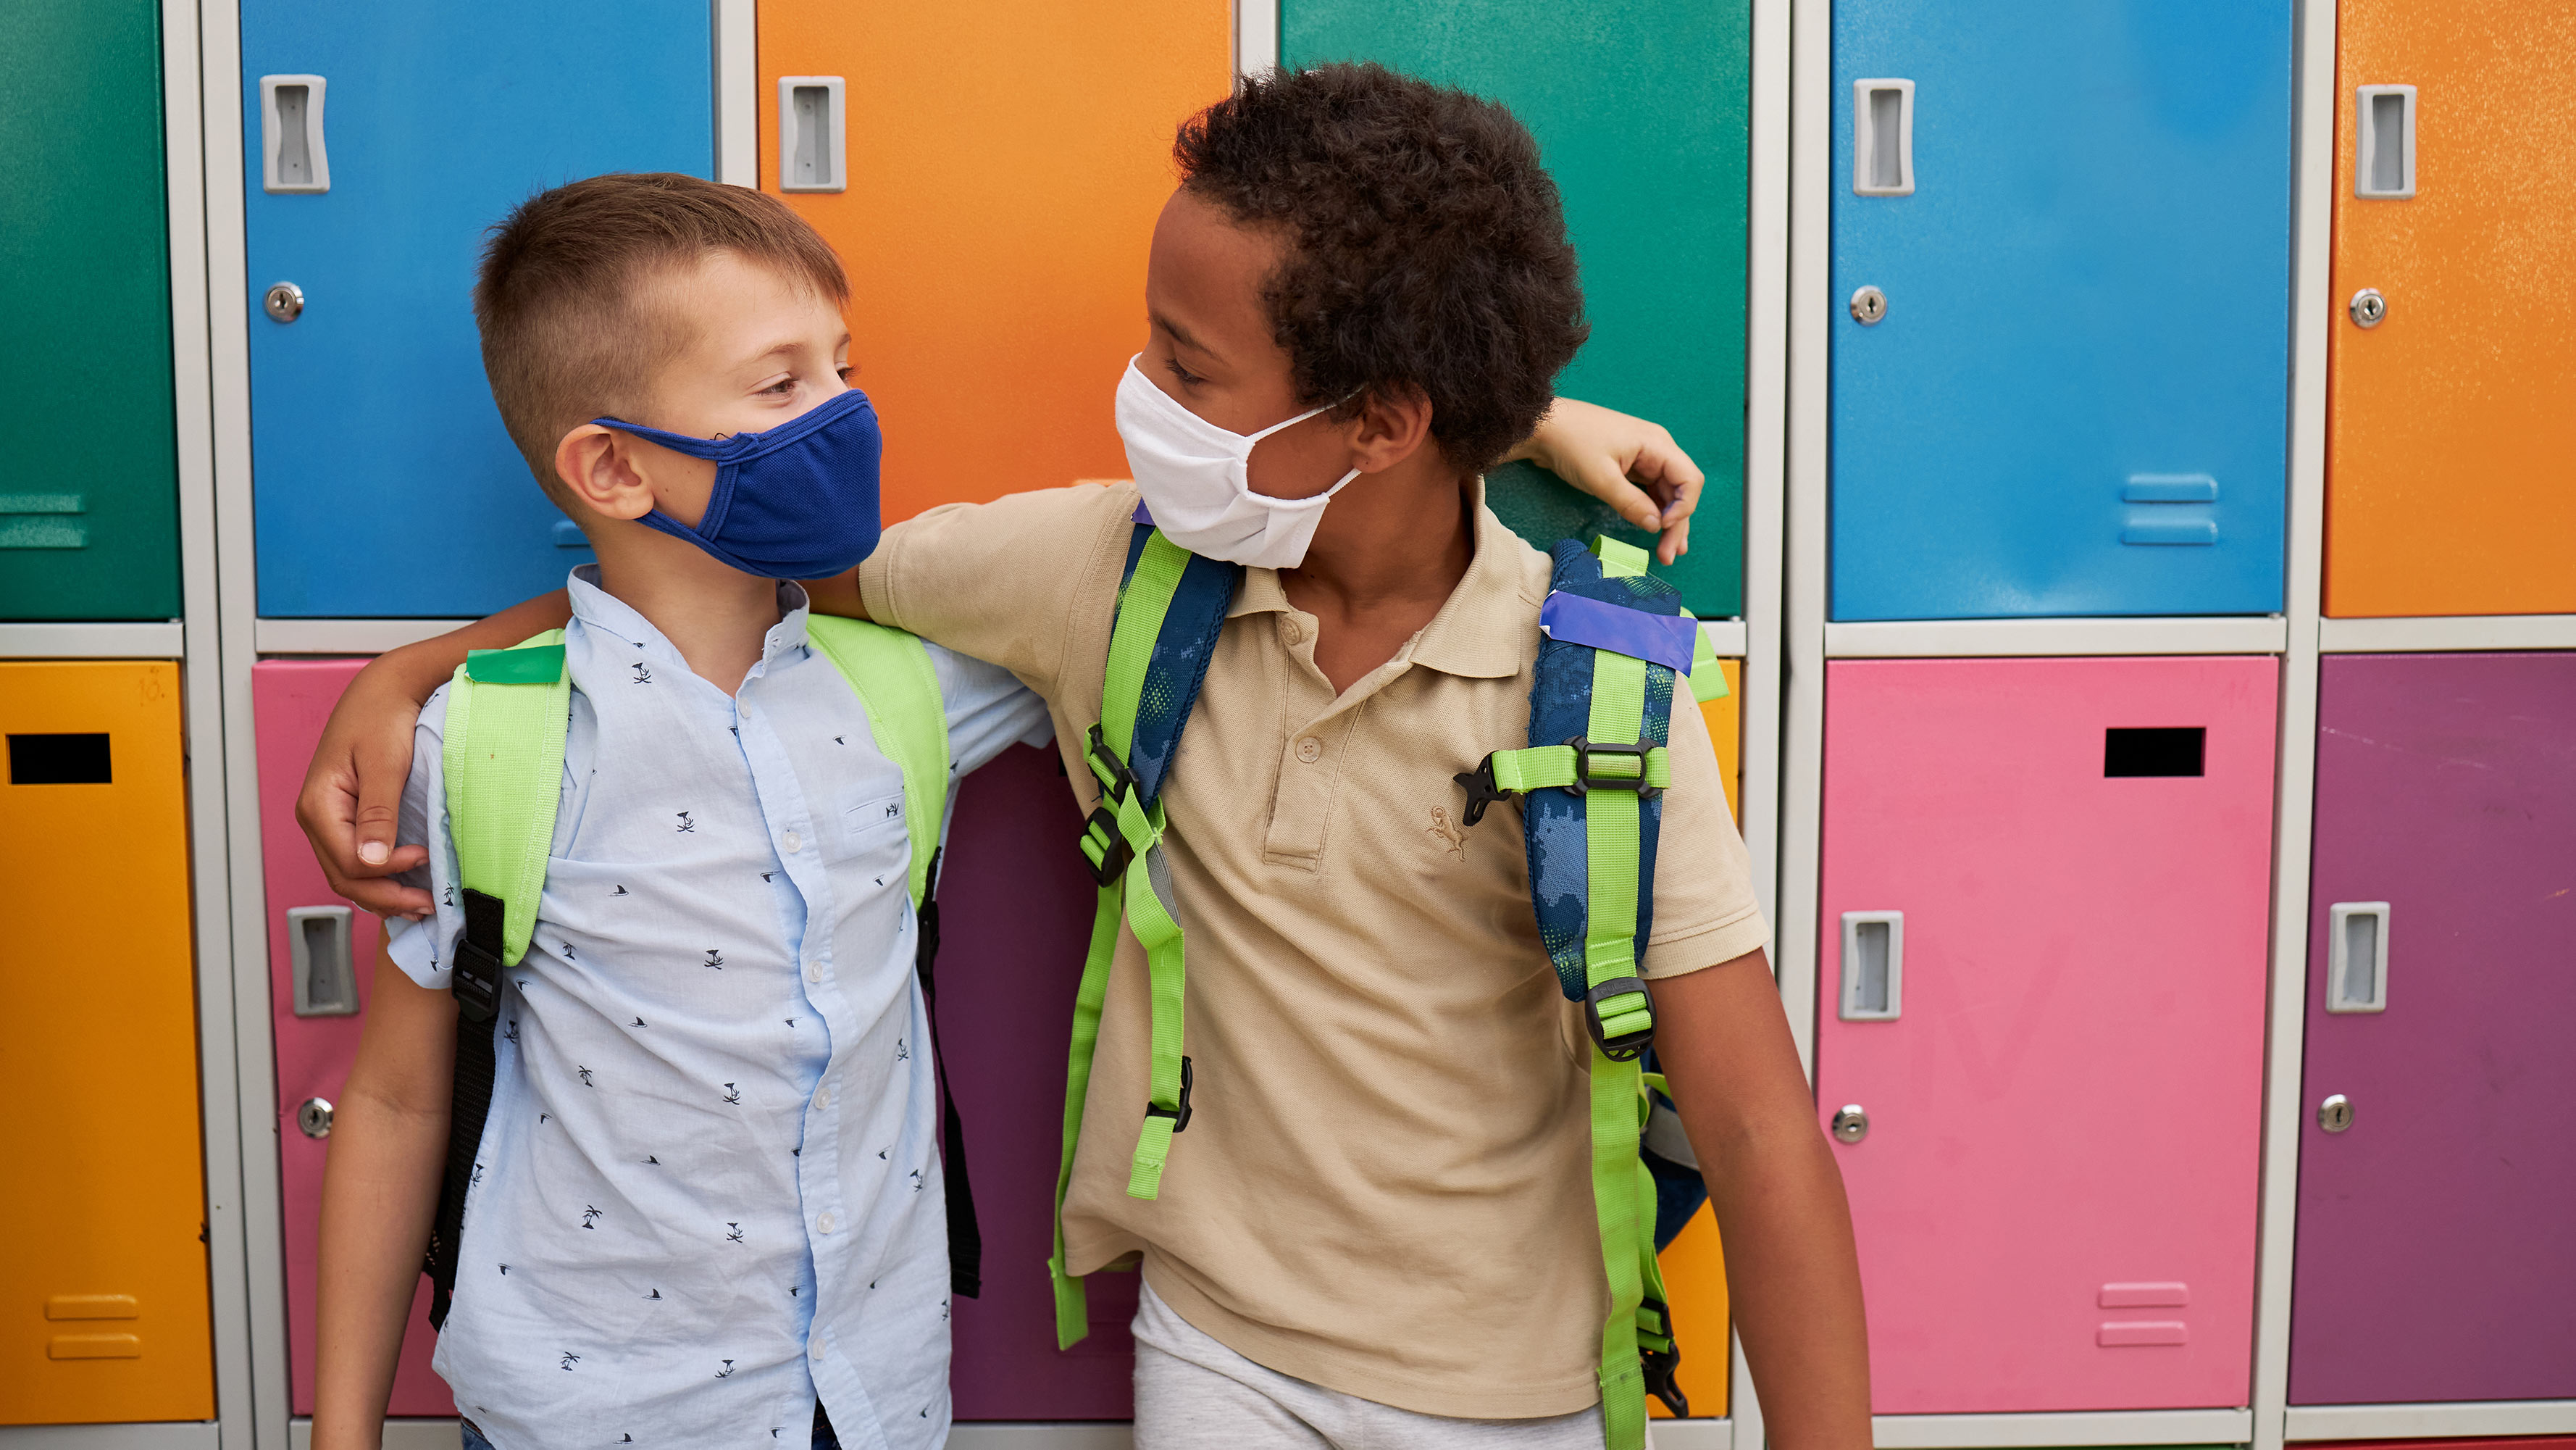 Two young children, wearing face masks and backpacks, hang out in front of bright-colored lockers in an elementary school classroom.